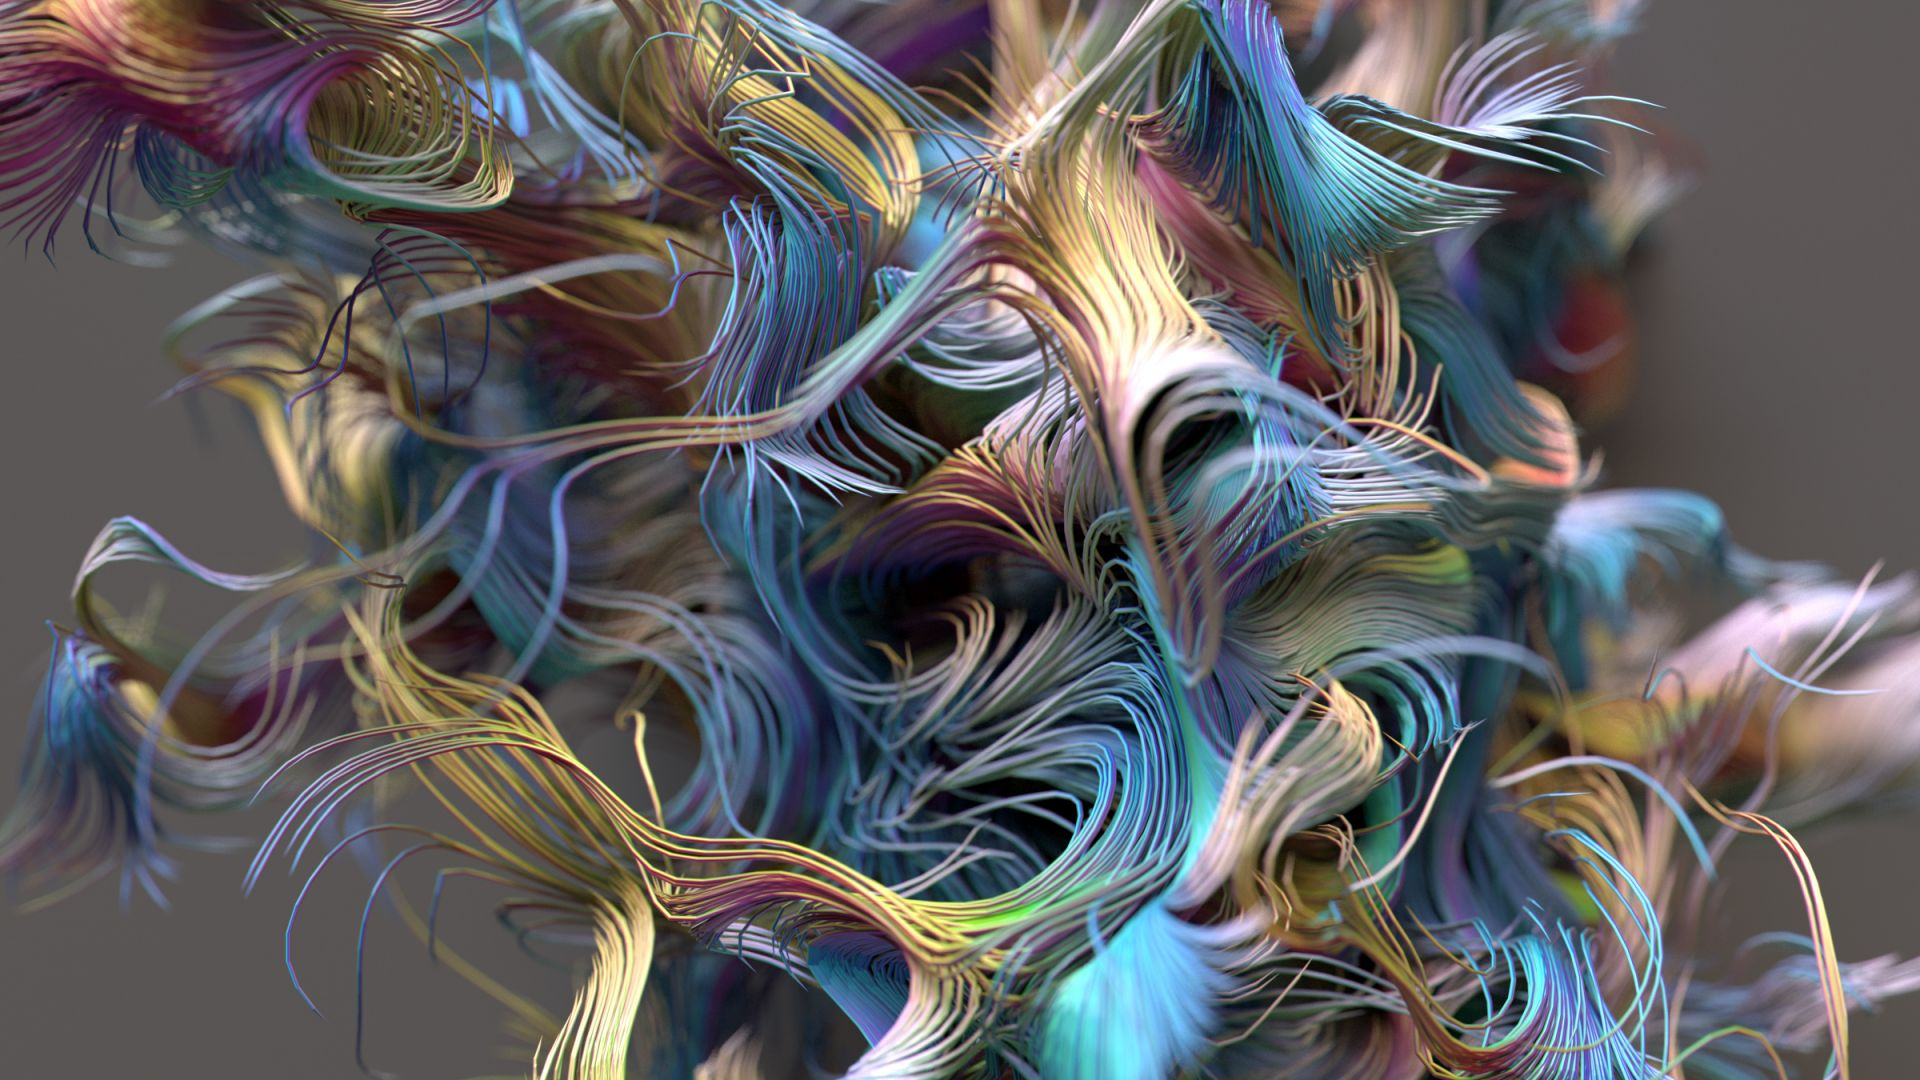 Wallpaper Abstract Iphone Wallpaper 4k 5k Lines 3d